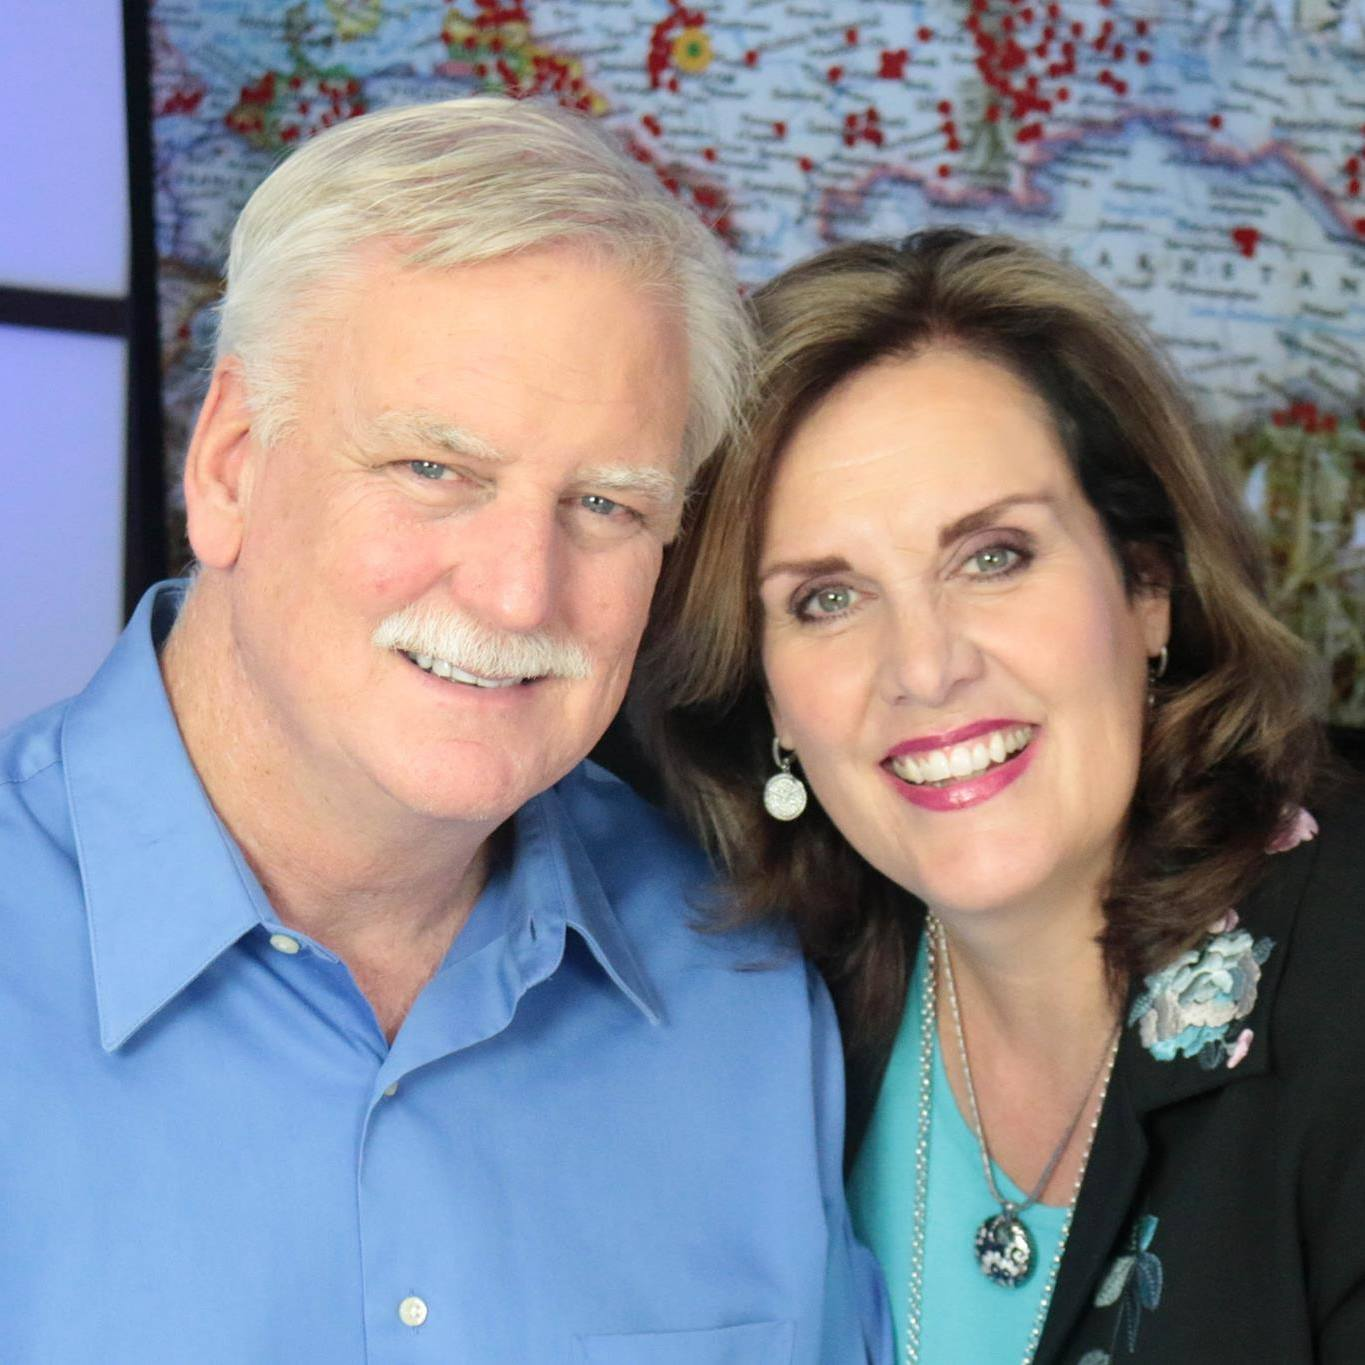 Dr. Kevin and Dr. Leslie McNulty - Through Christian Adventures International the McNultys host mass media and mass outreach events all over the world.Website Facebook Page